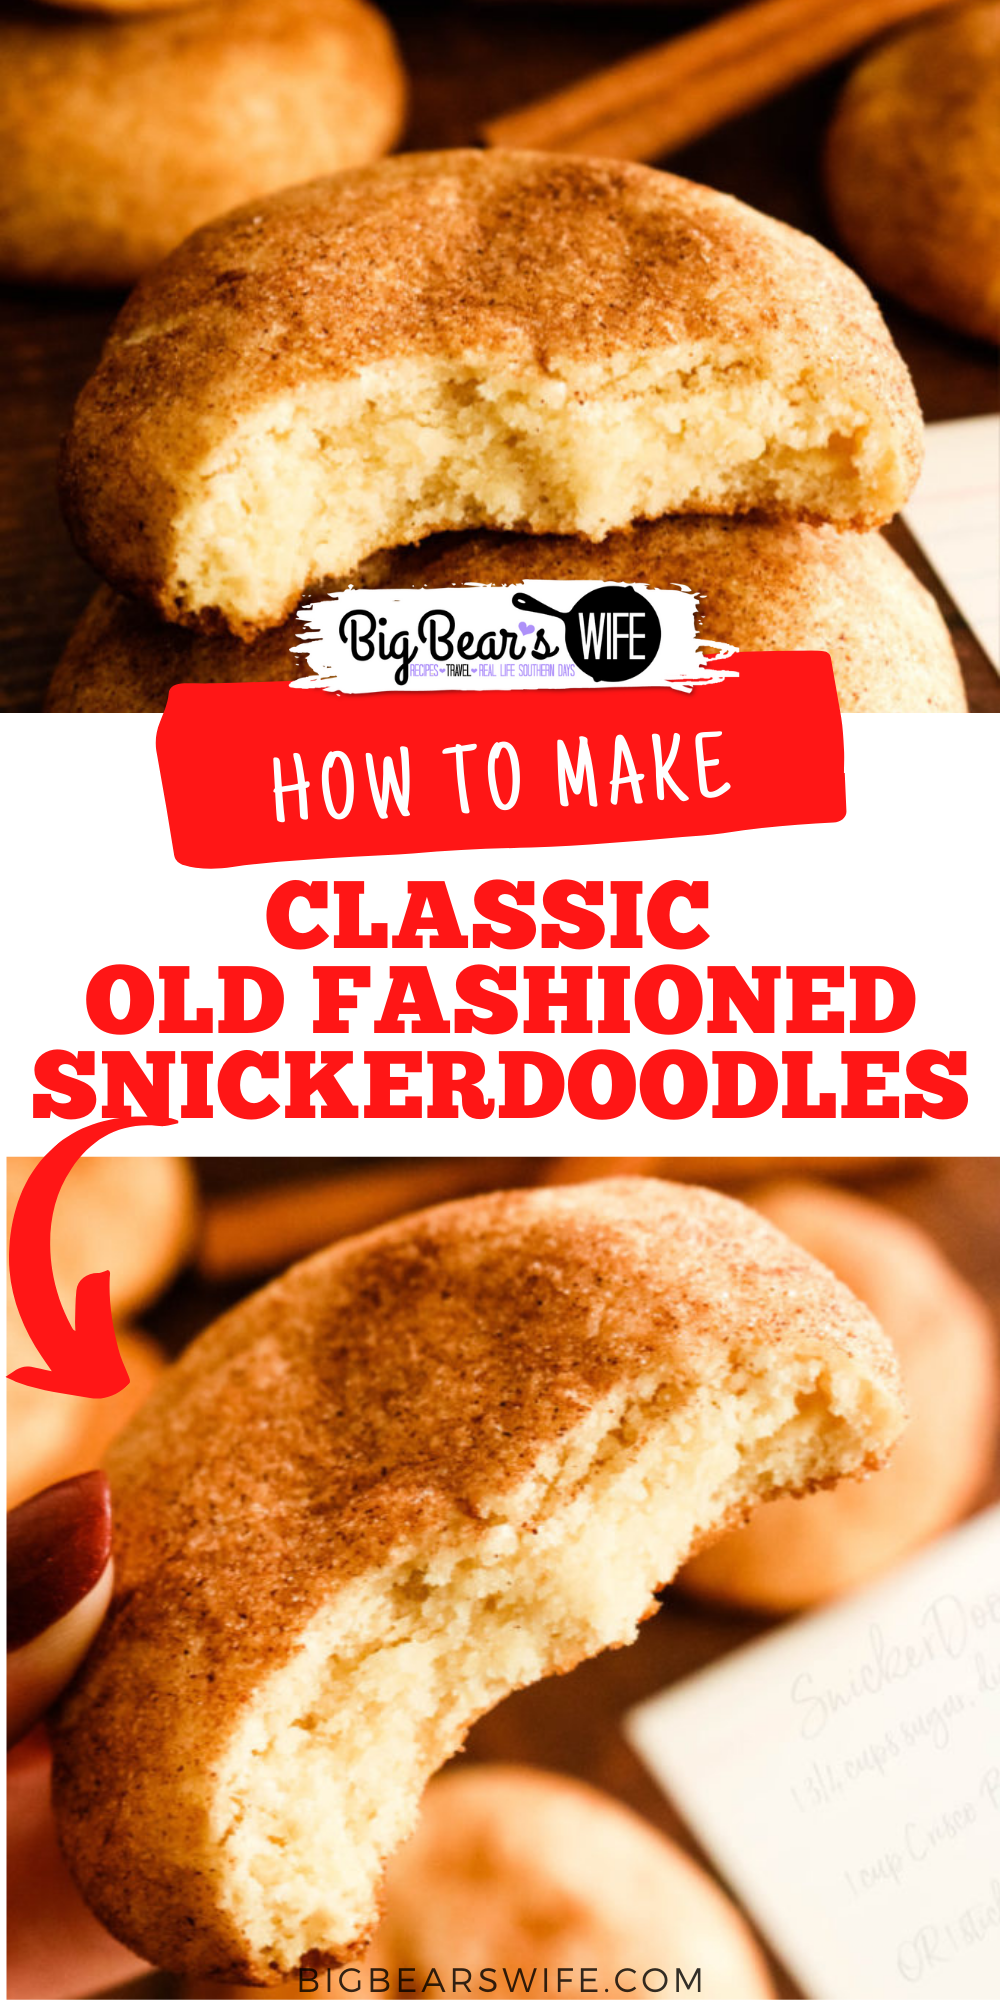 Classic Old Fashioned Snickerdoodles need to be a part of everyone's recipe box! Made with shortening and rolled in cinnamon sugar for a classic sweet bite! via @bigbearswife